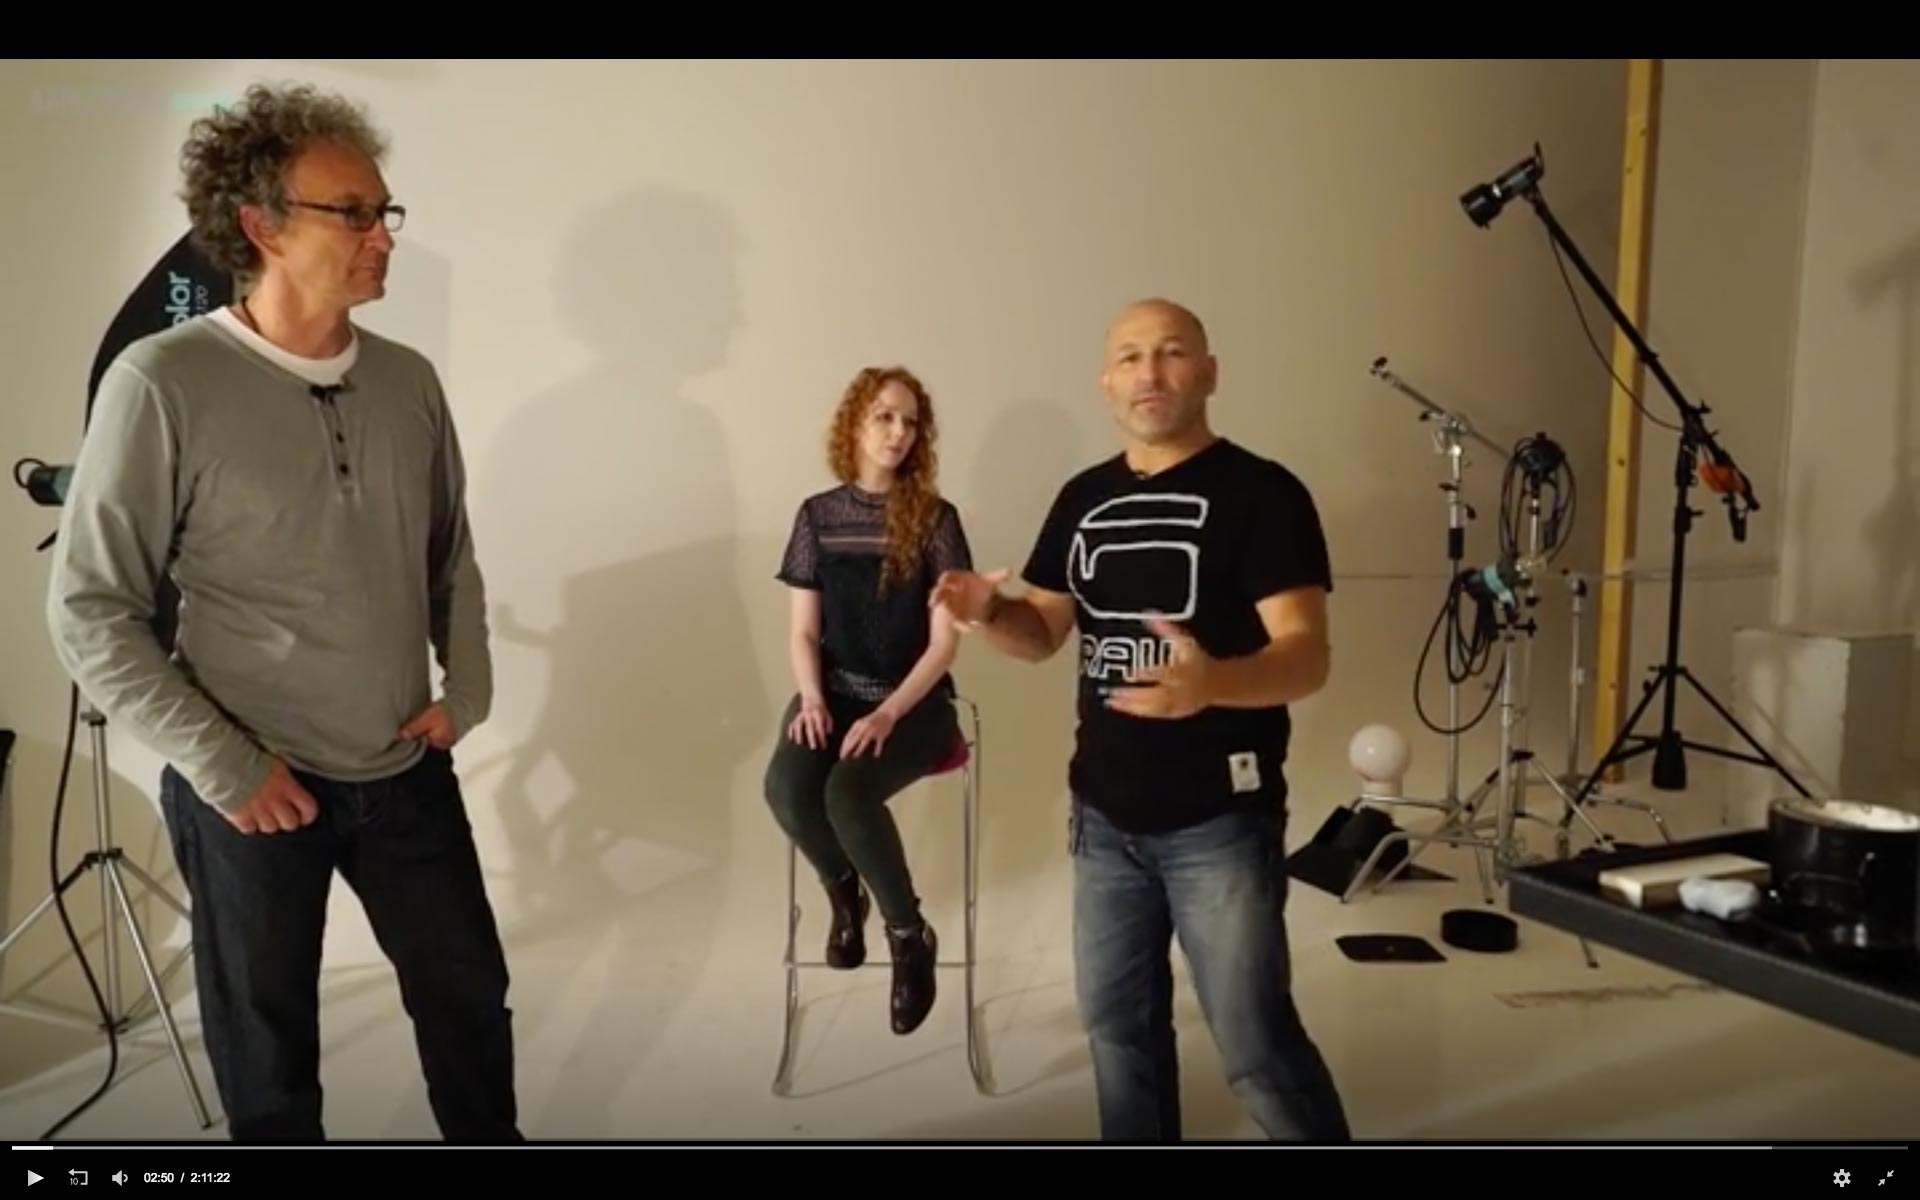 Live Workshop – broncolor 'How-To' with Urs Recher